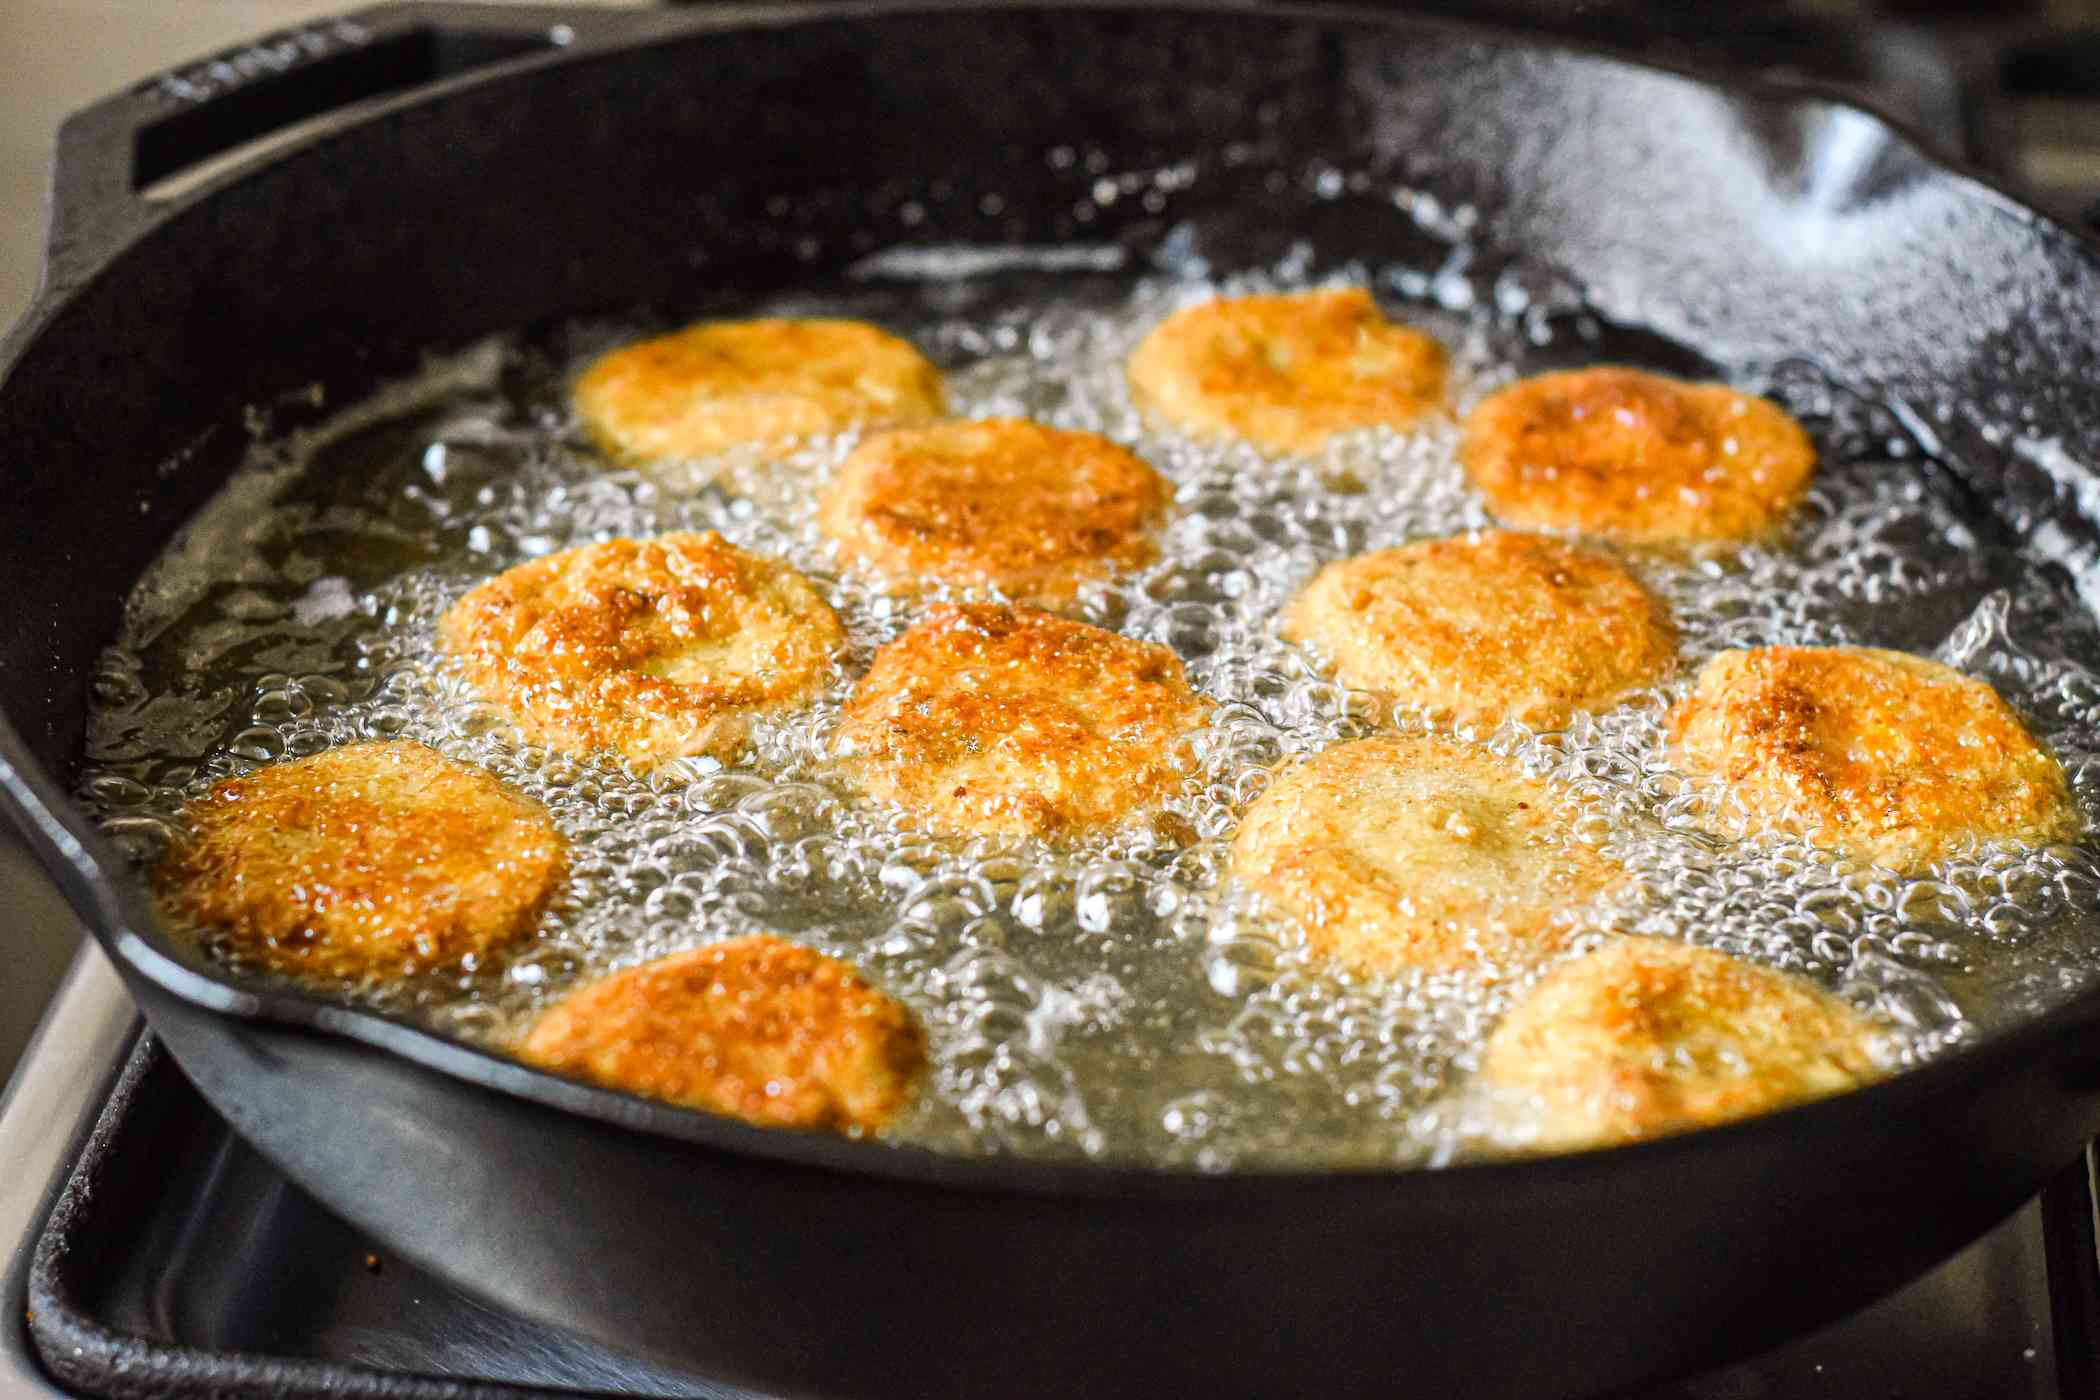 Frying green tomatoes in a cast iron skillet.